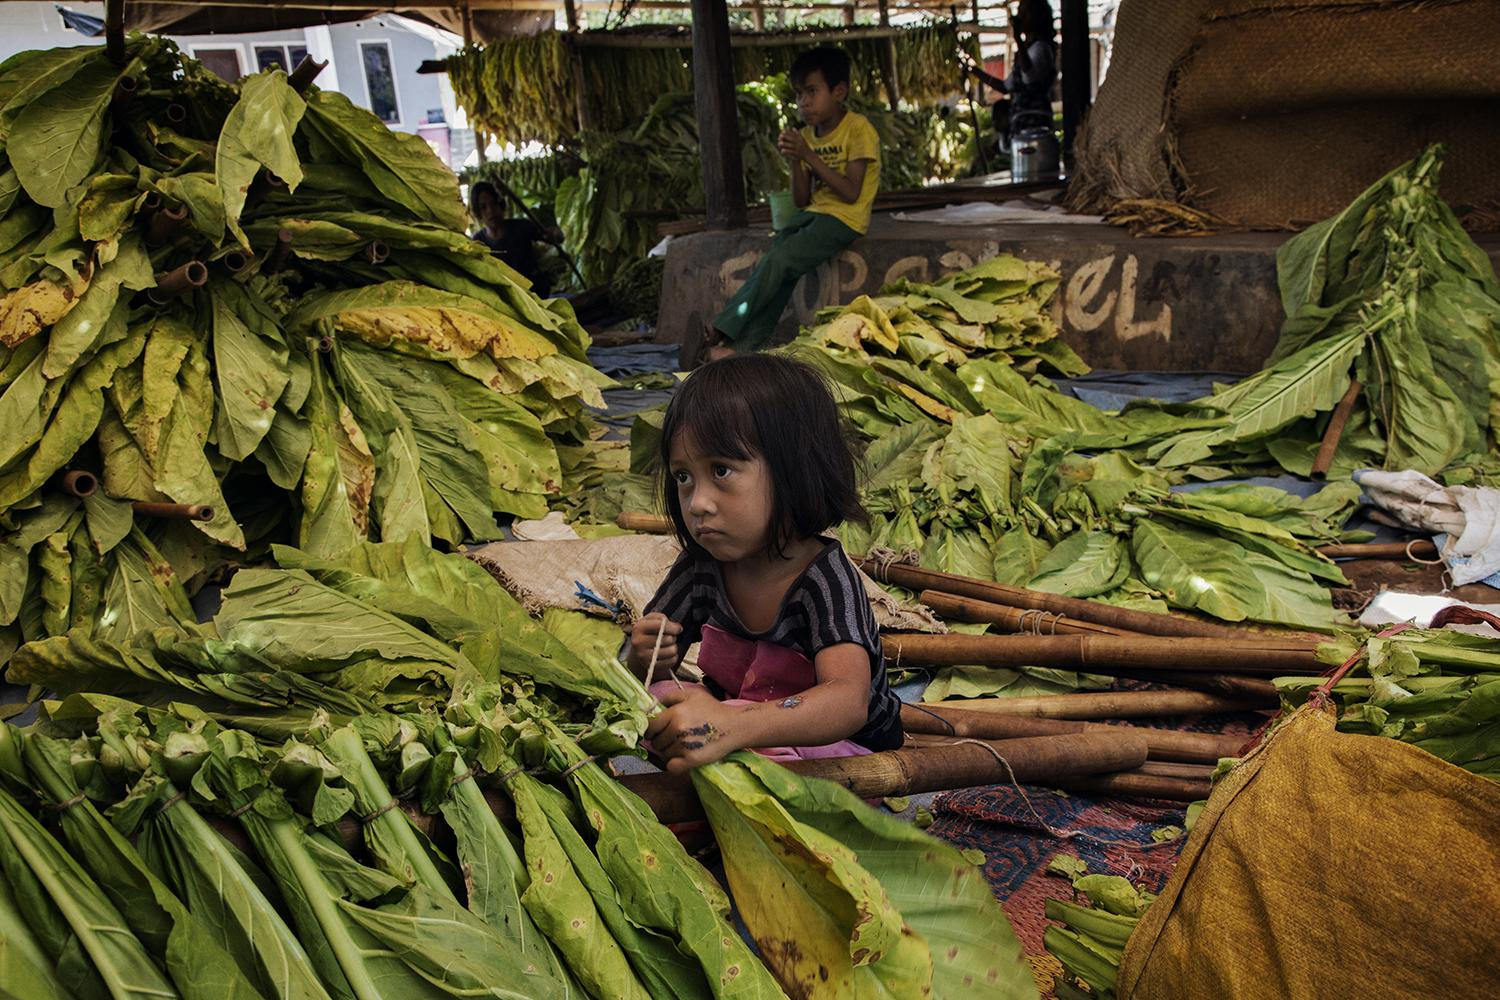 A young girl ties tobacco leaves onto sticks to prepare them for curing in East Lombok, West Nusa Tenggara.